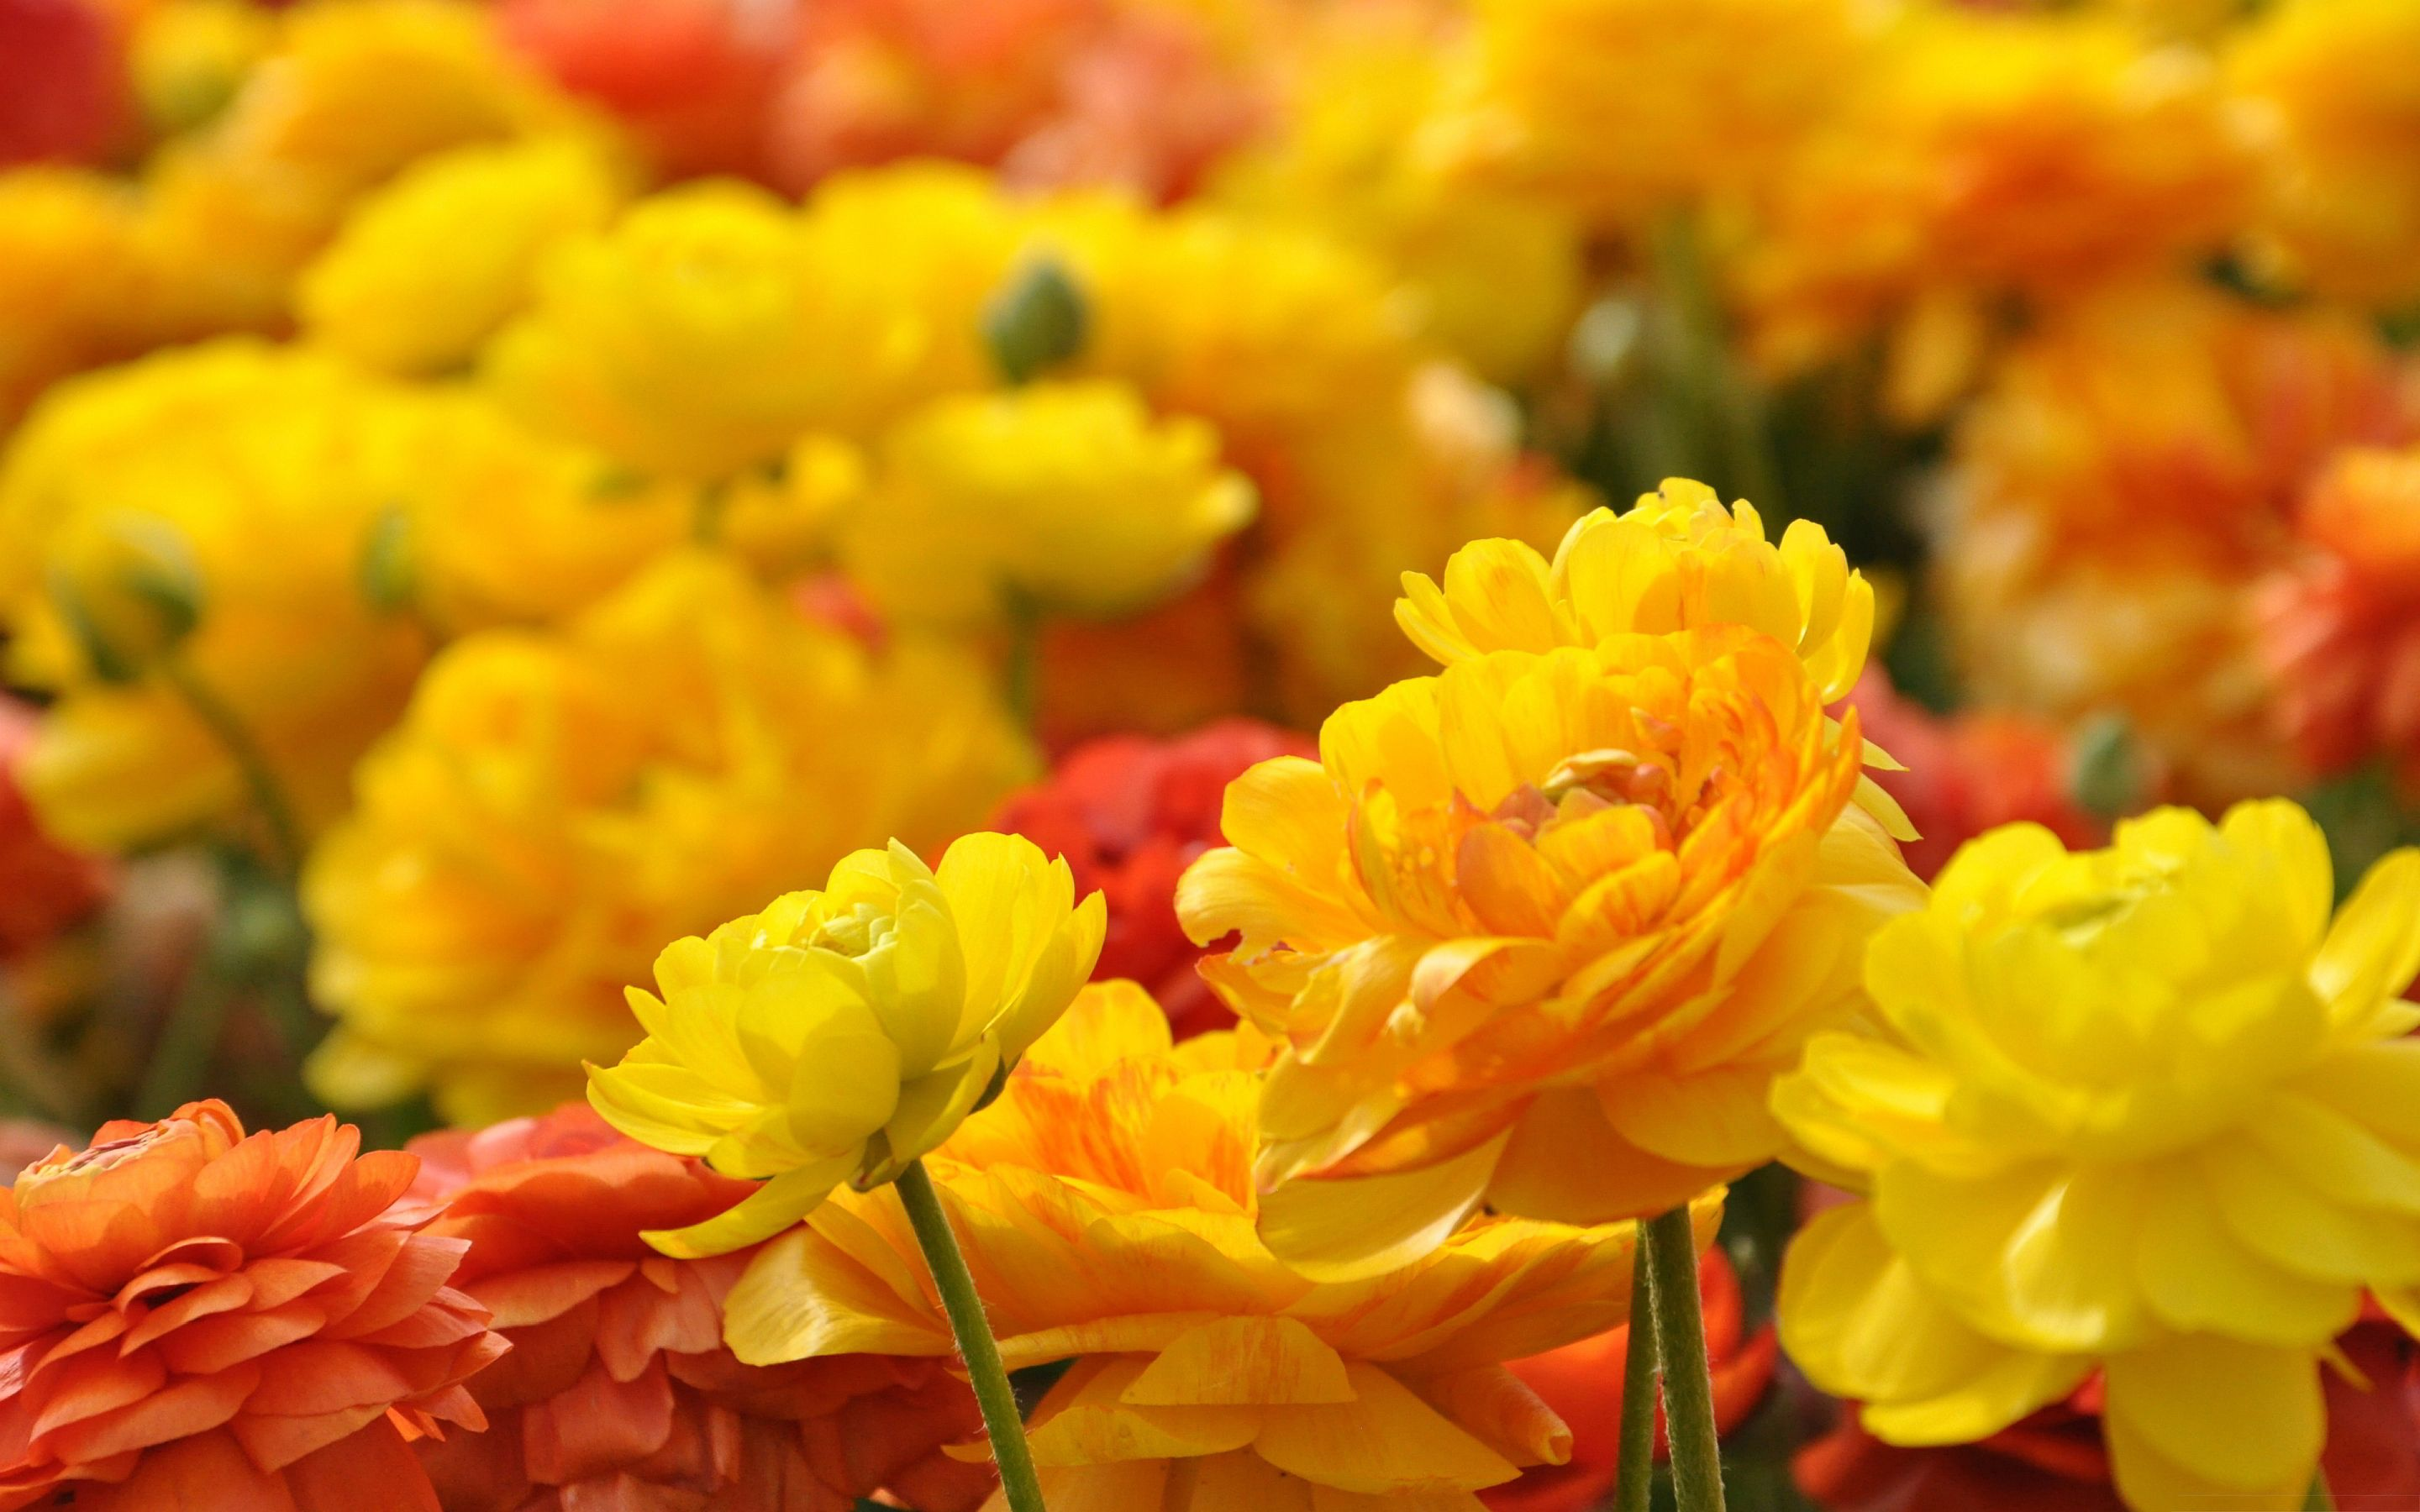 Ultra HD Wallpaper, flower 4K Yellow red flowers hd